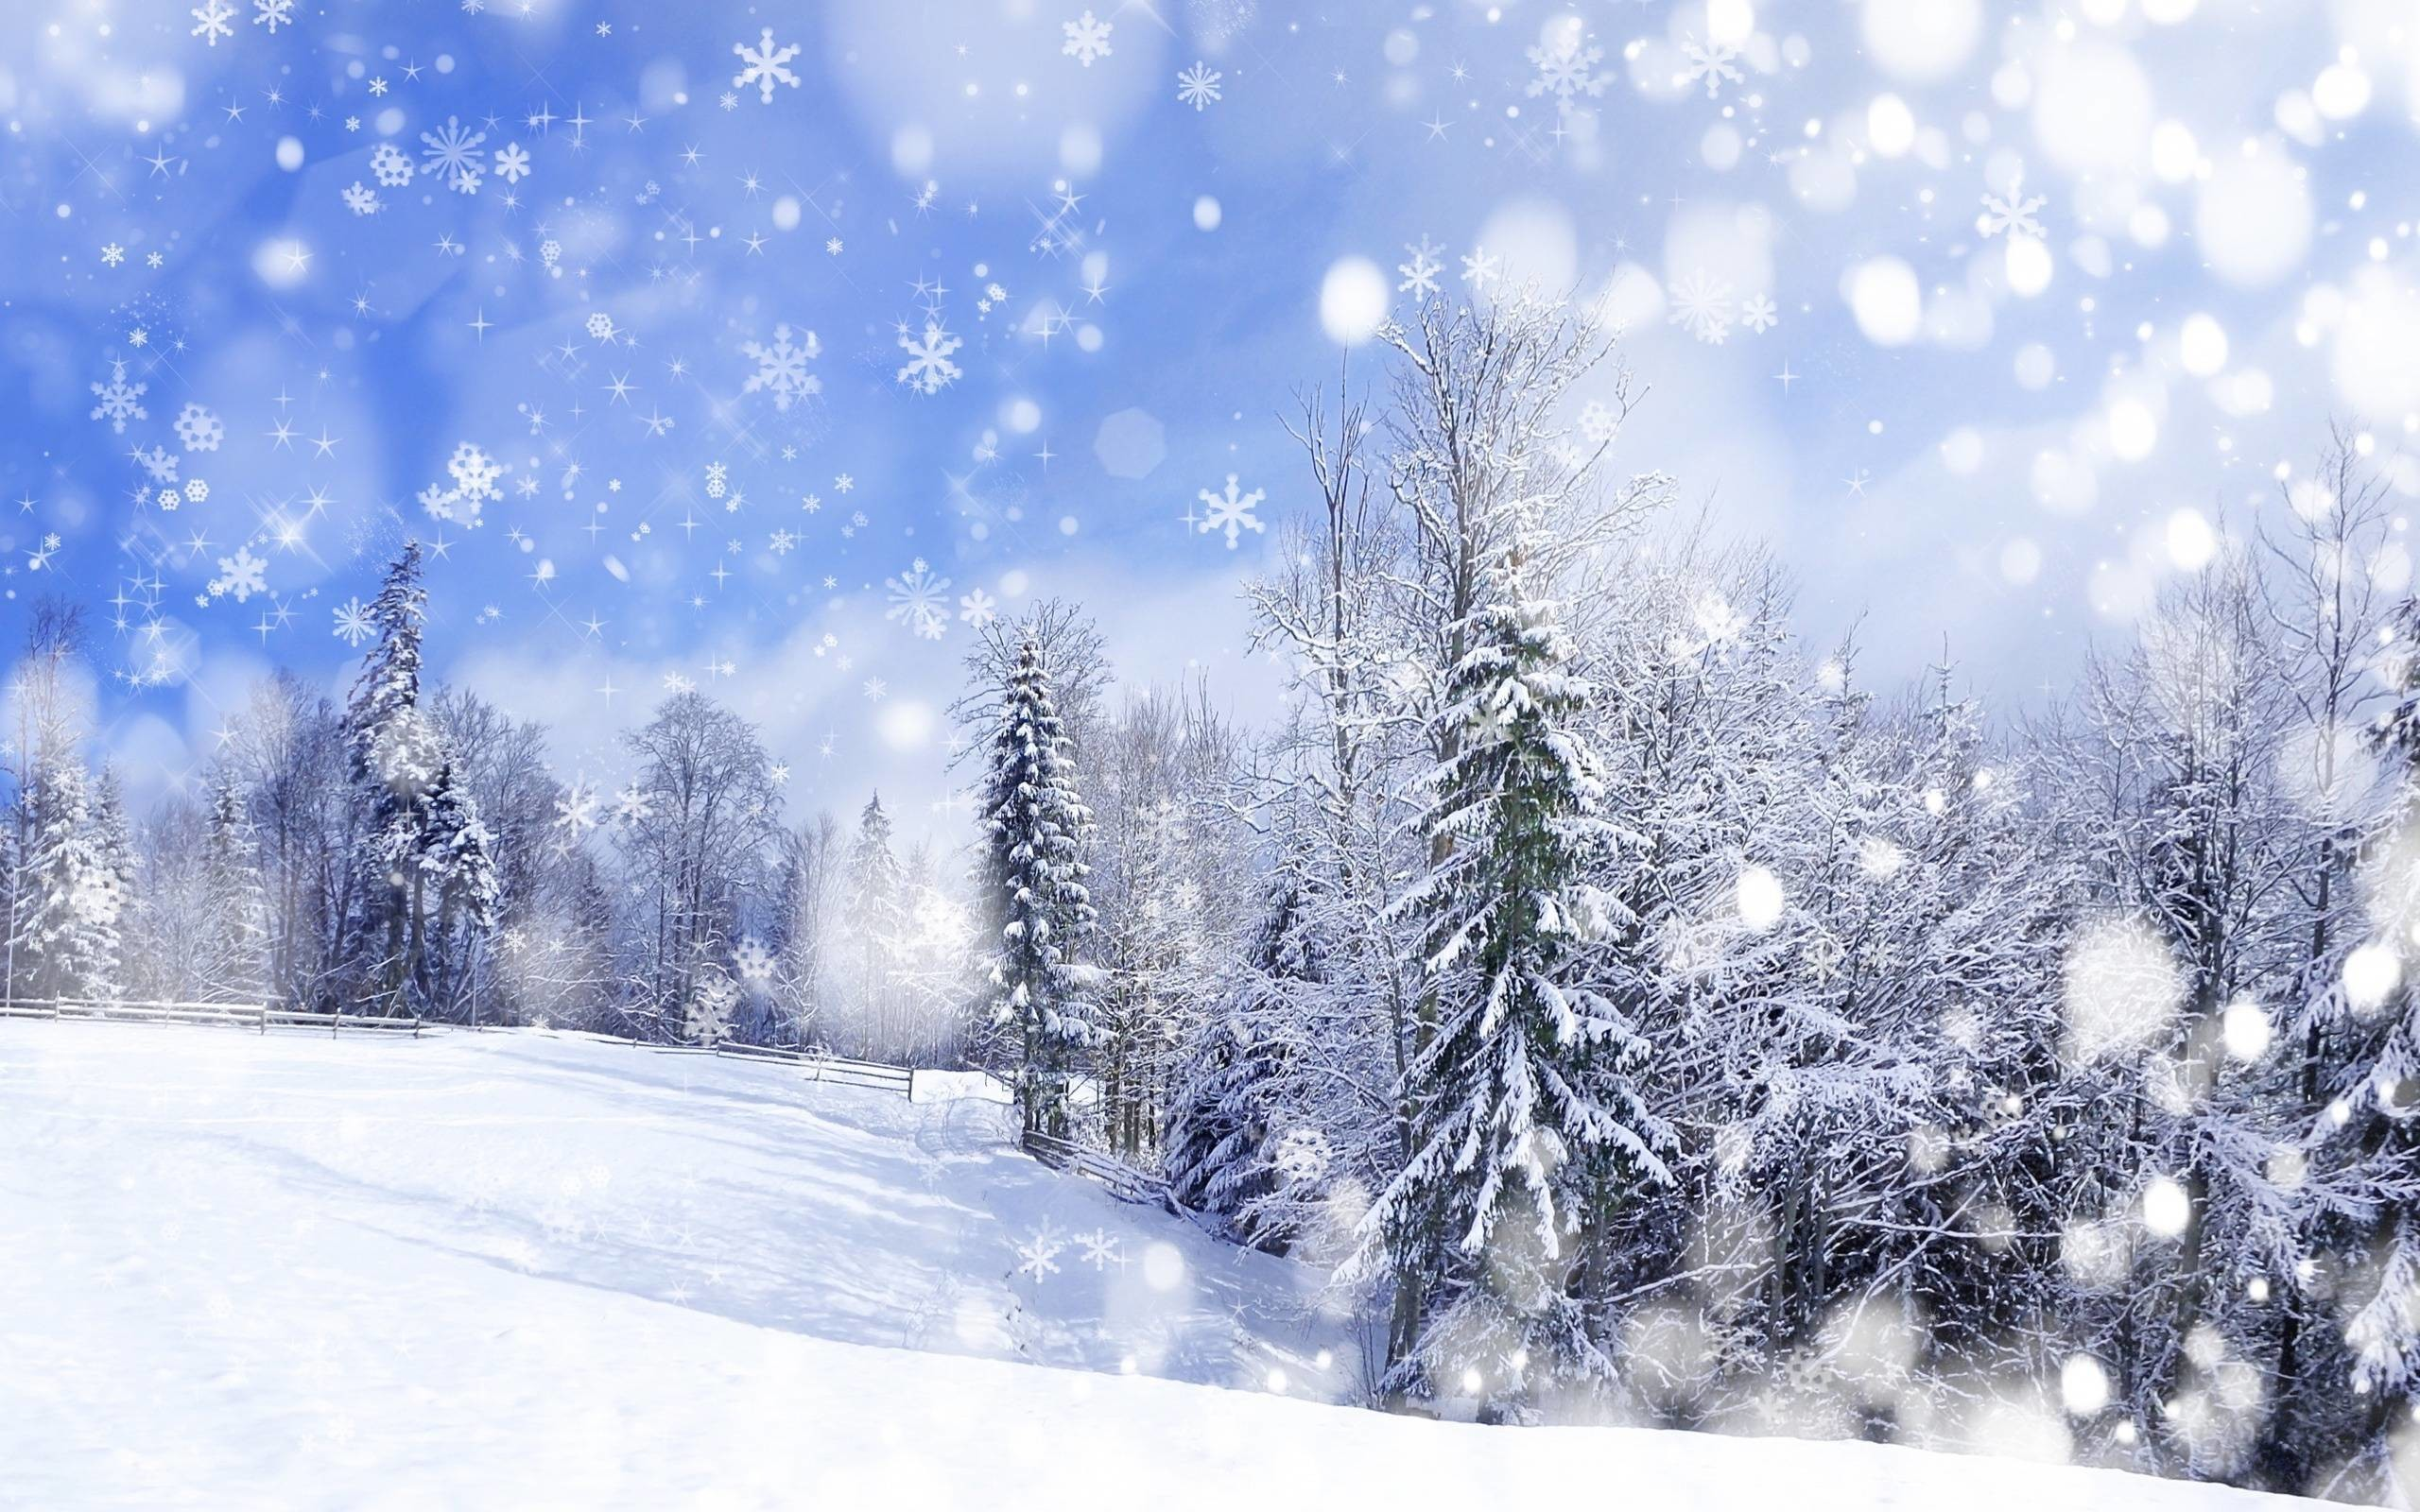 Anime Winter Scenery Wallpaper – HD Wallpapers Backgrounds of Your Choice